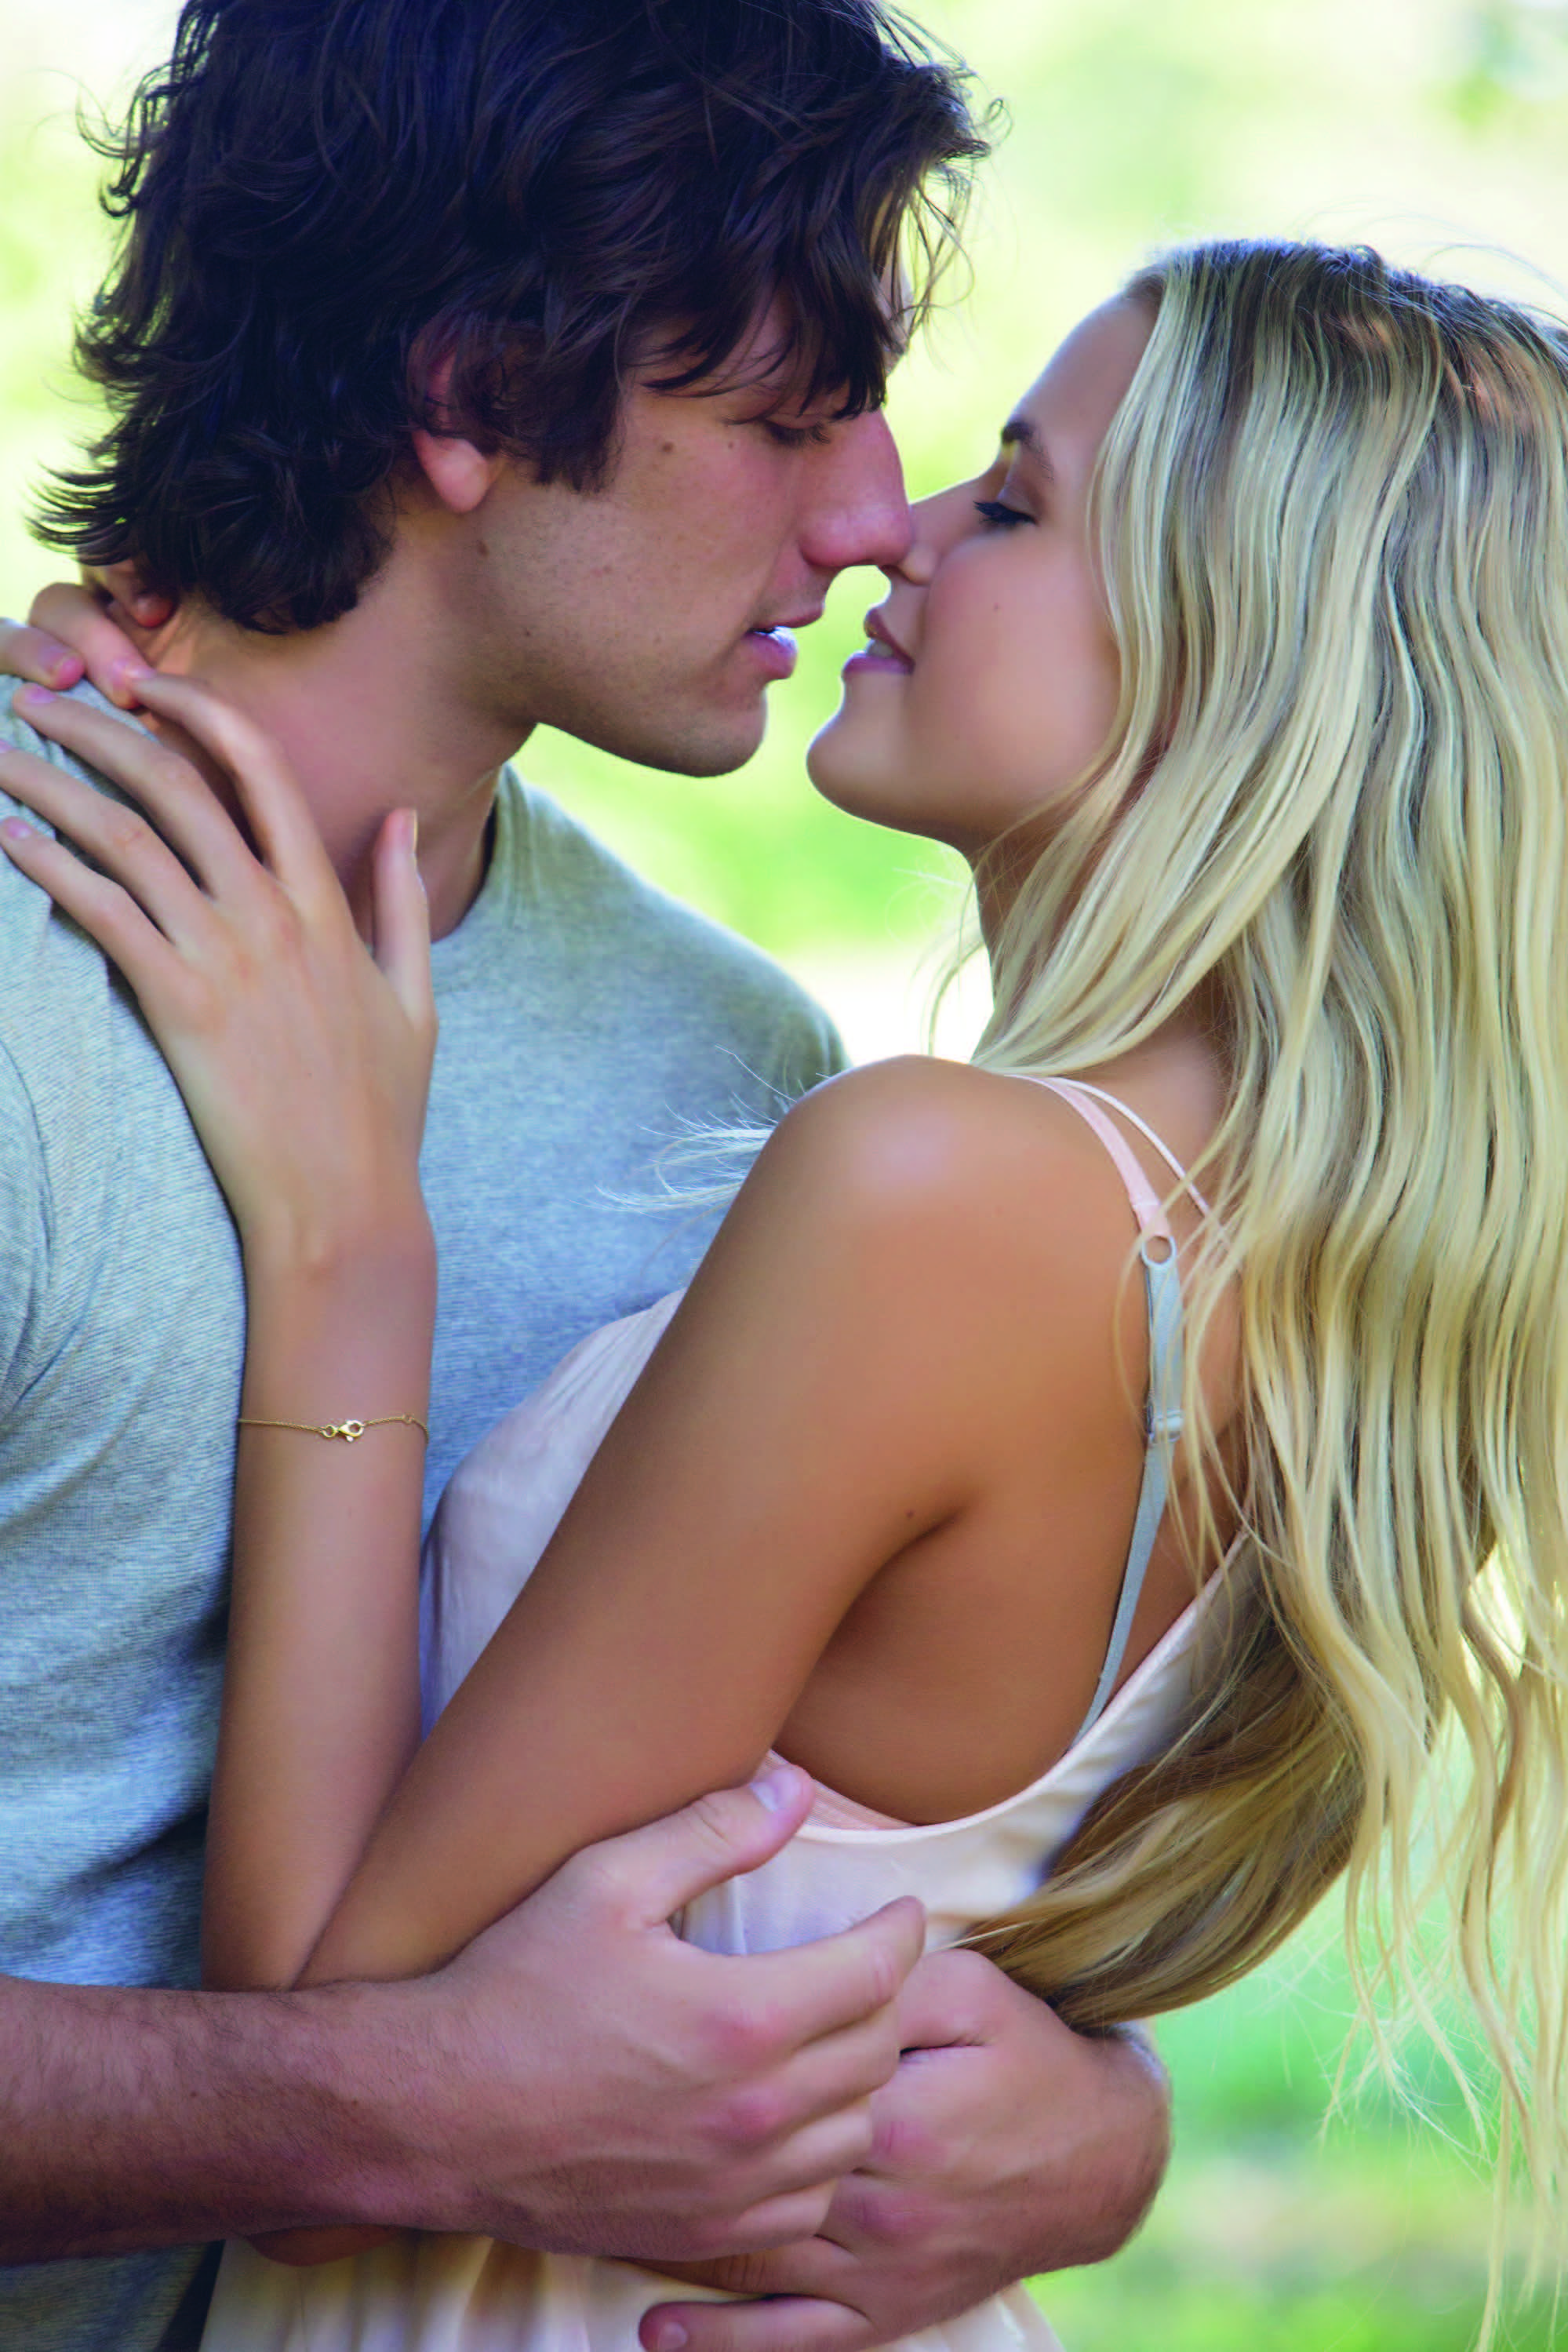 Review phim Endless love